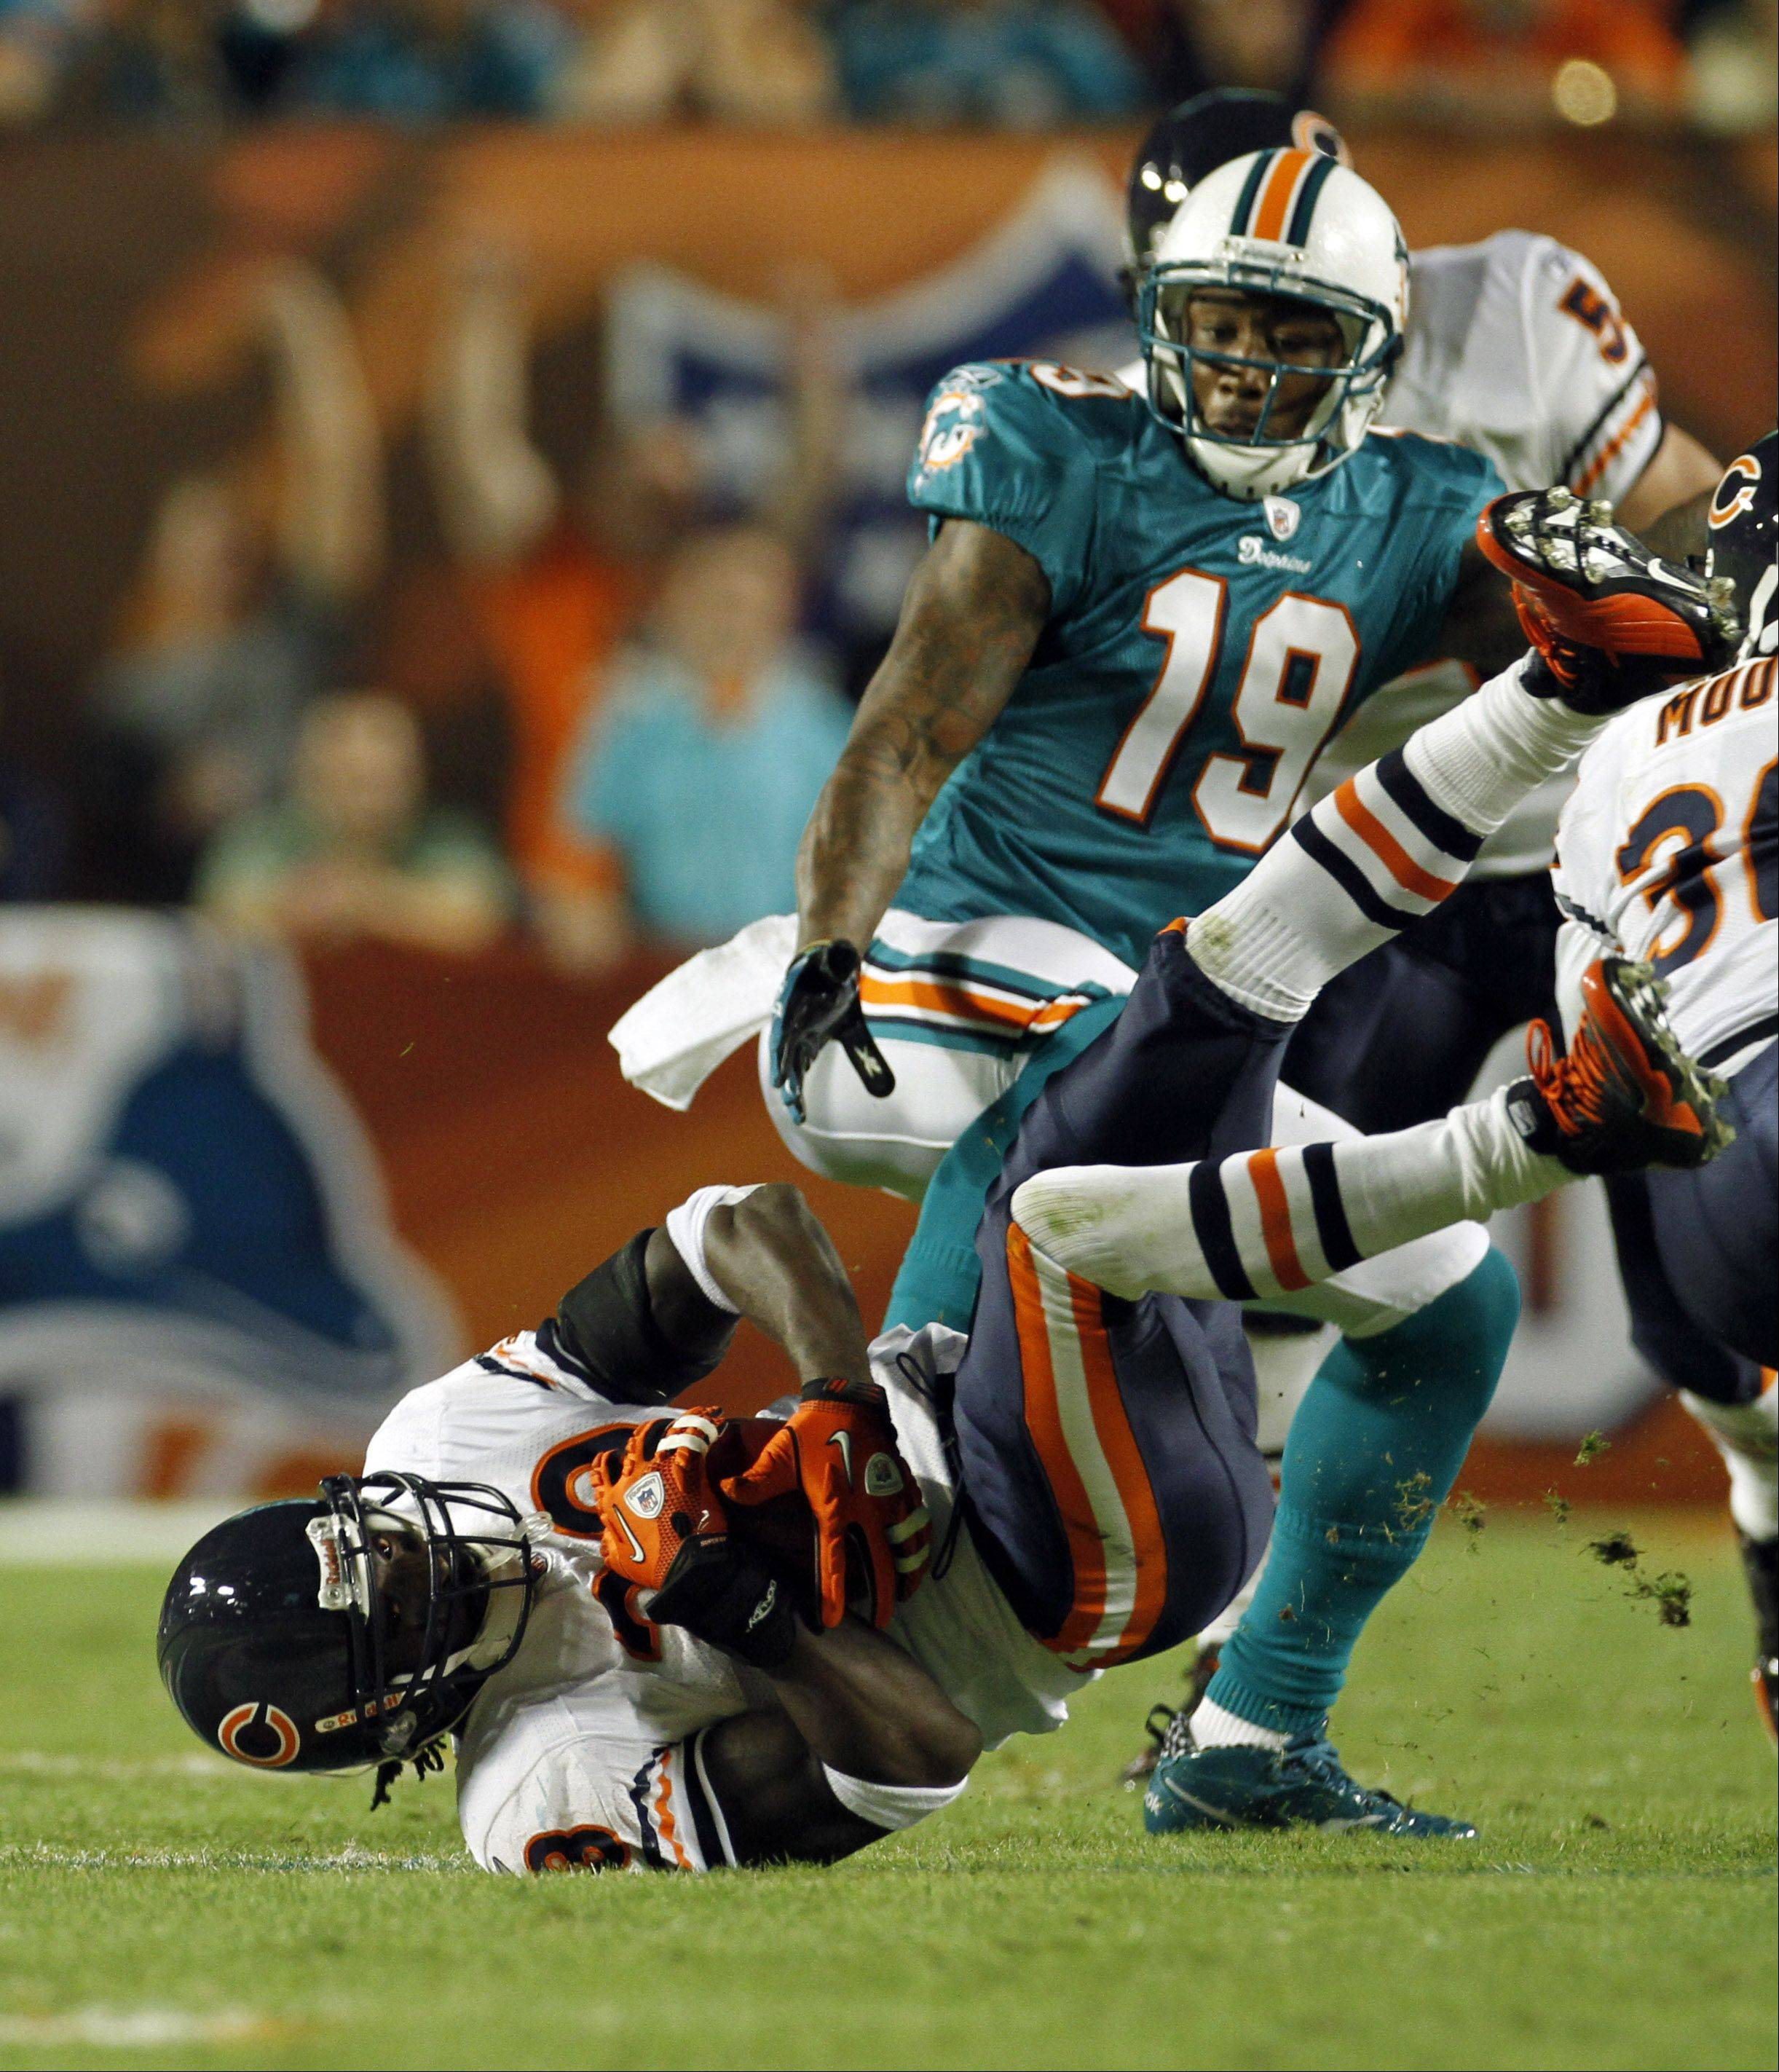 Chicago Bears cornerback Charles Tillman, lower left, intercepts a ball intended for Miami Dolphins wide receiver Brandon Marshall (19) during the first quarter of an NFL football game, Thursday, Nov. 18, 2010, in Miami.